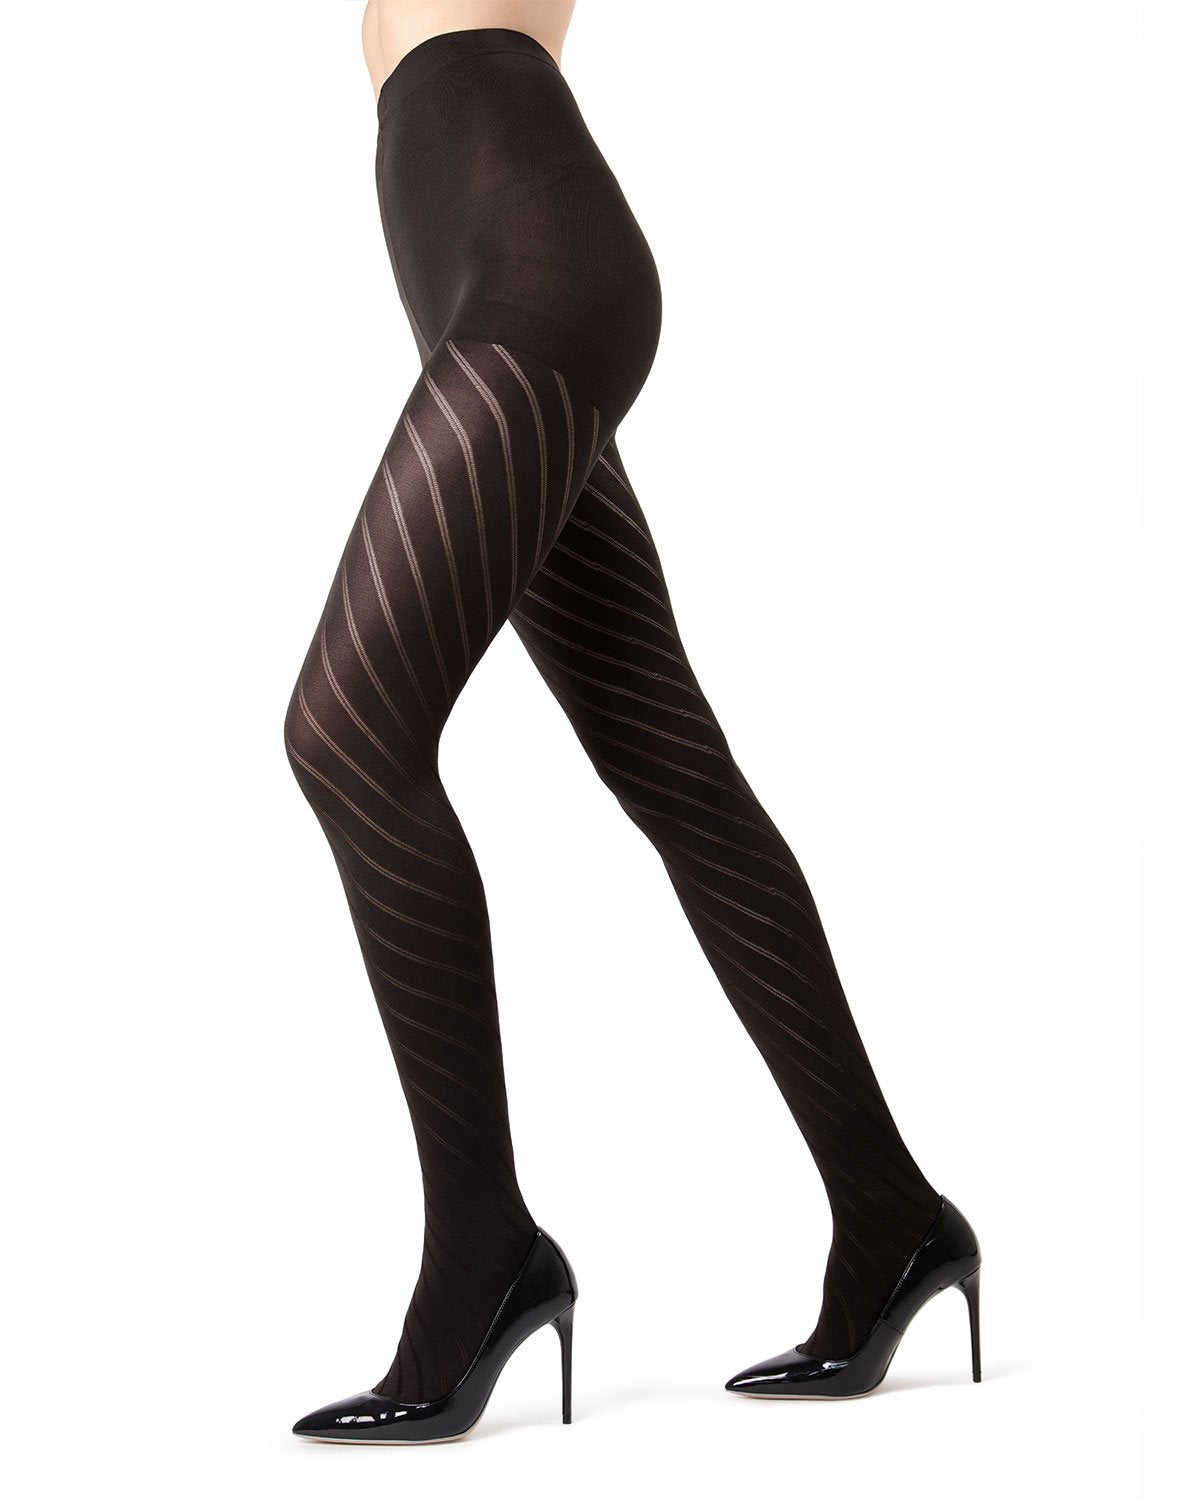 Spiral Opaque Tights